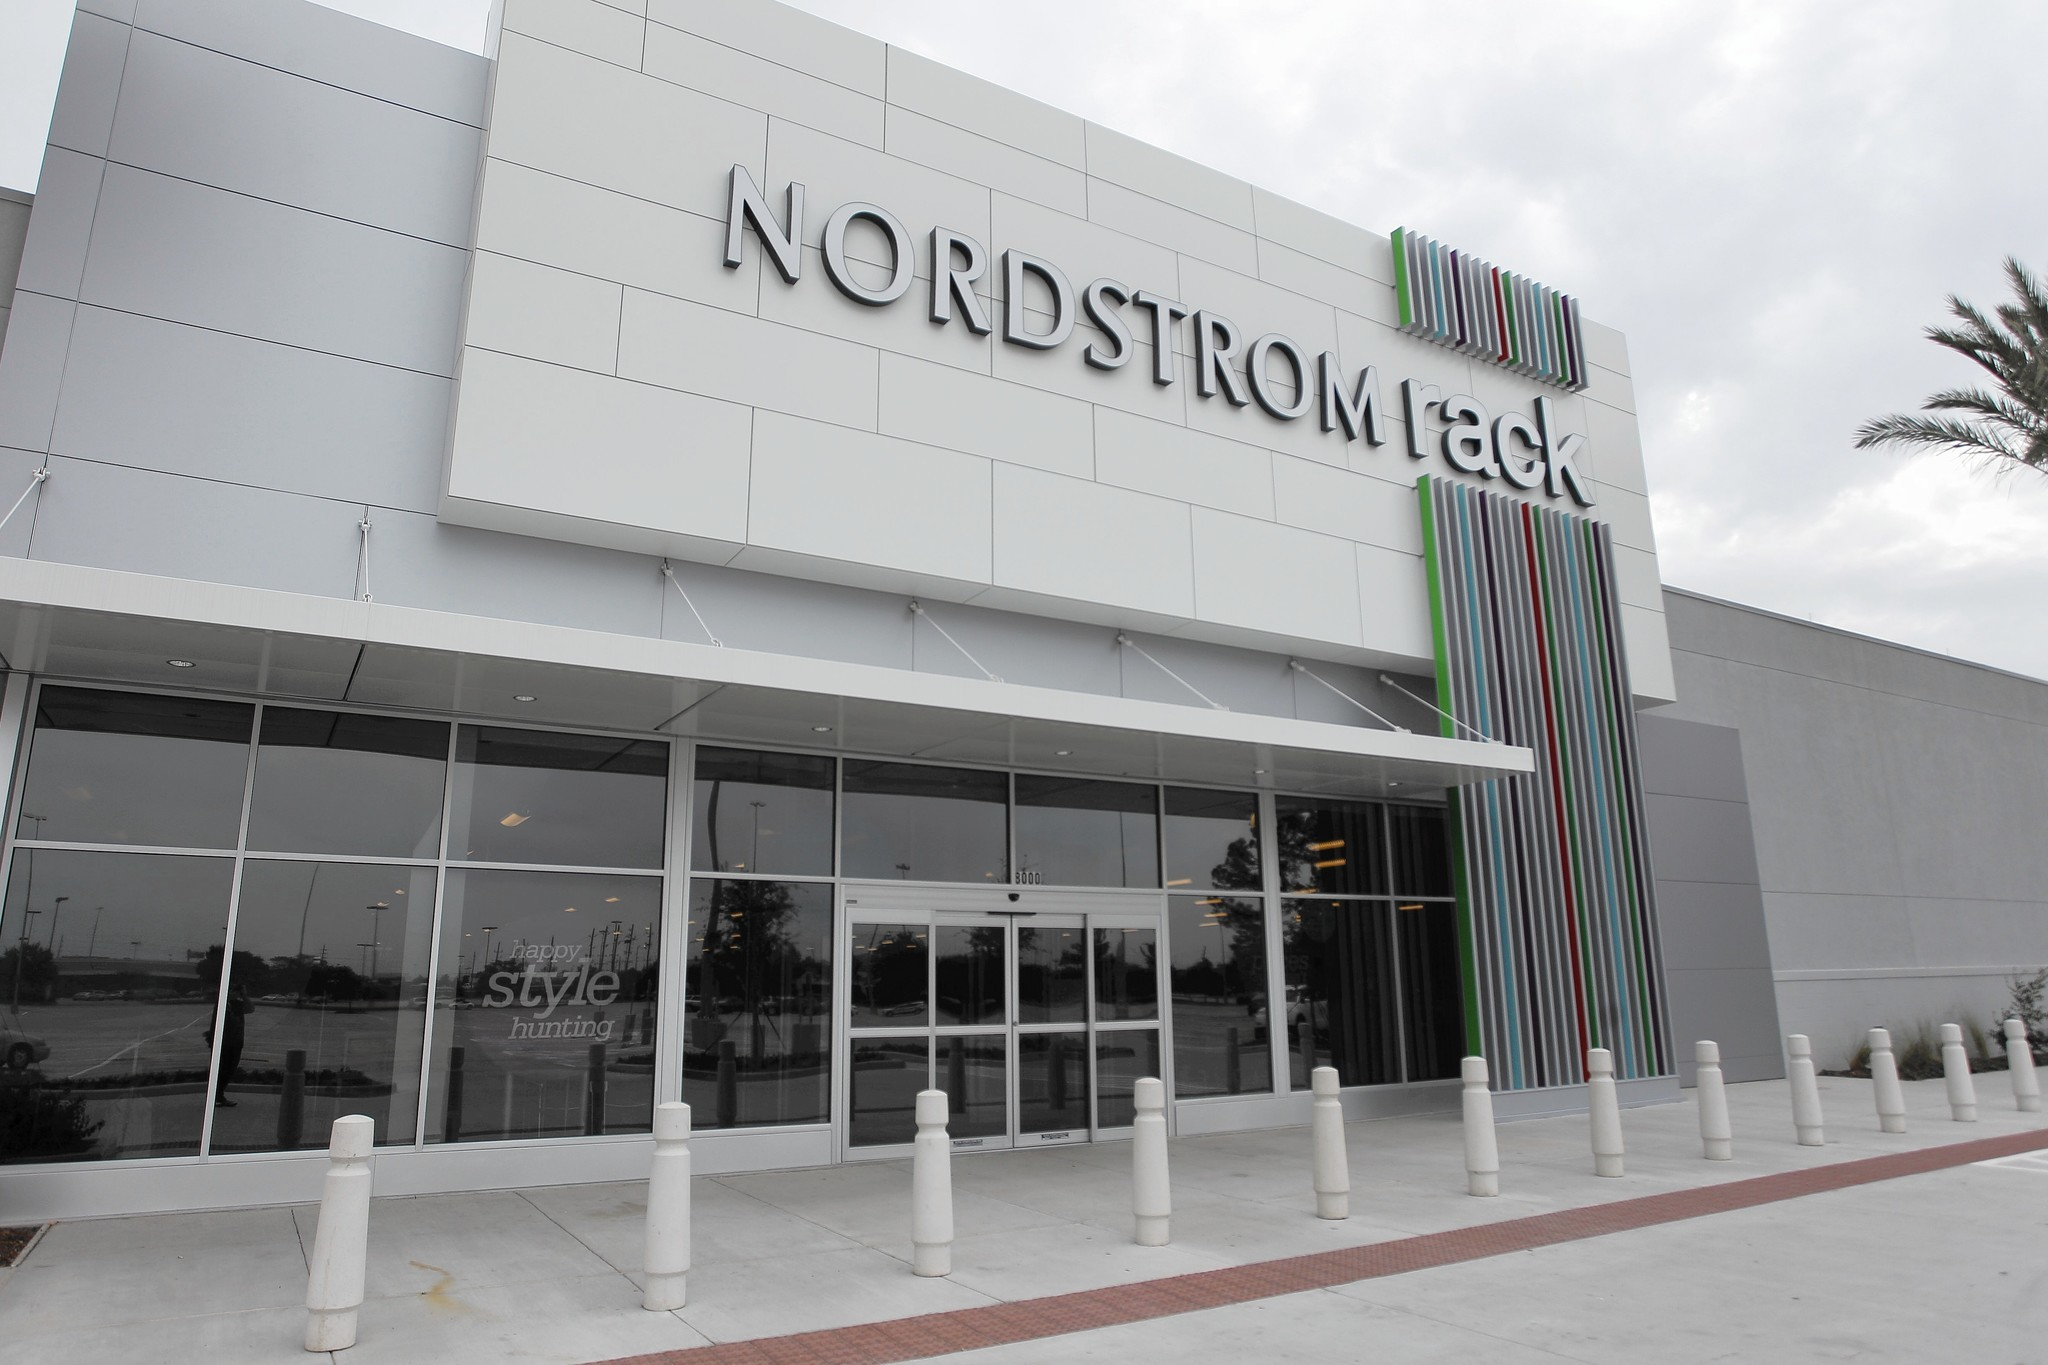 093ba11e2e7 Nordstrom Rack sets grand opening for Kildeer store - Lake Zurich Courier